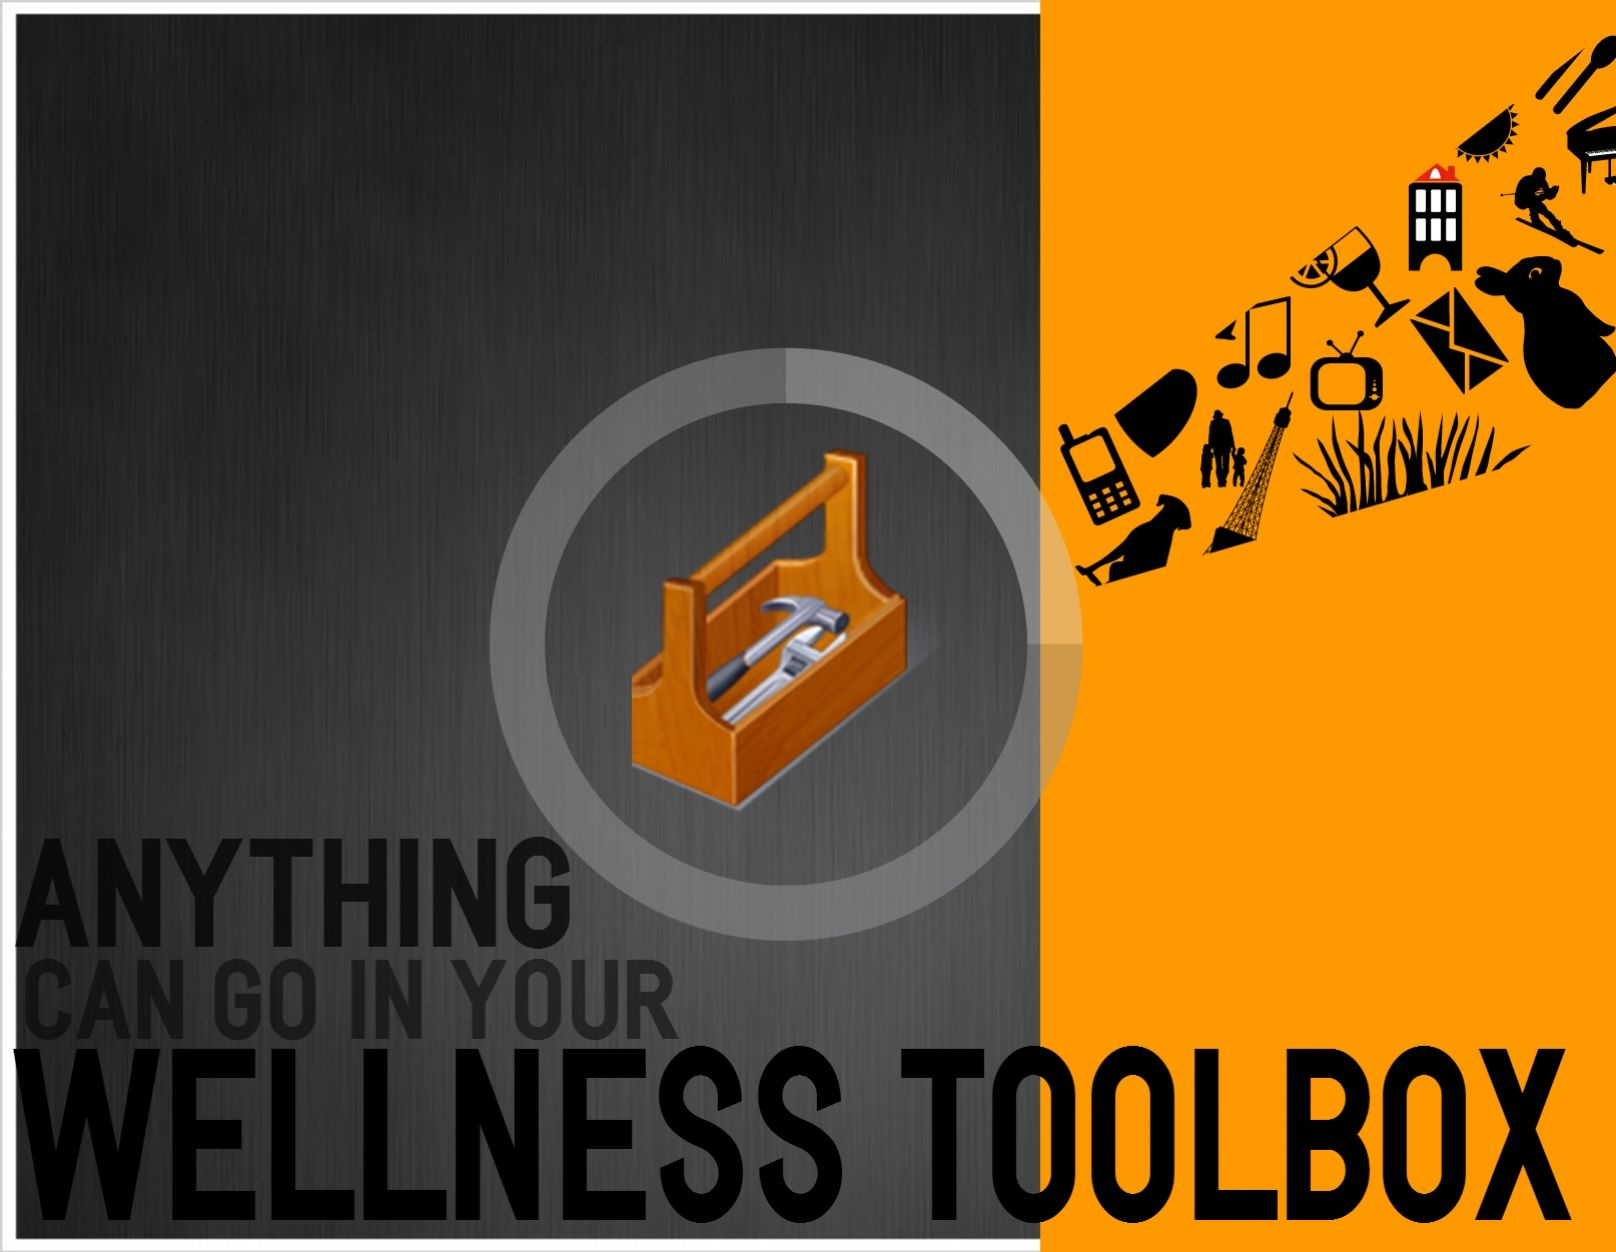 WRAP: Anything can go in your Wellness Toolbox!